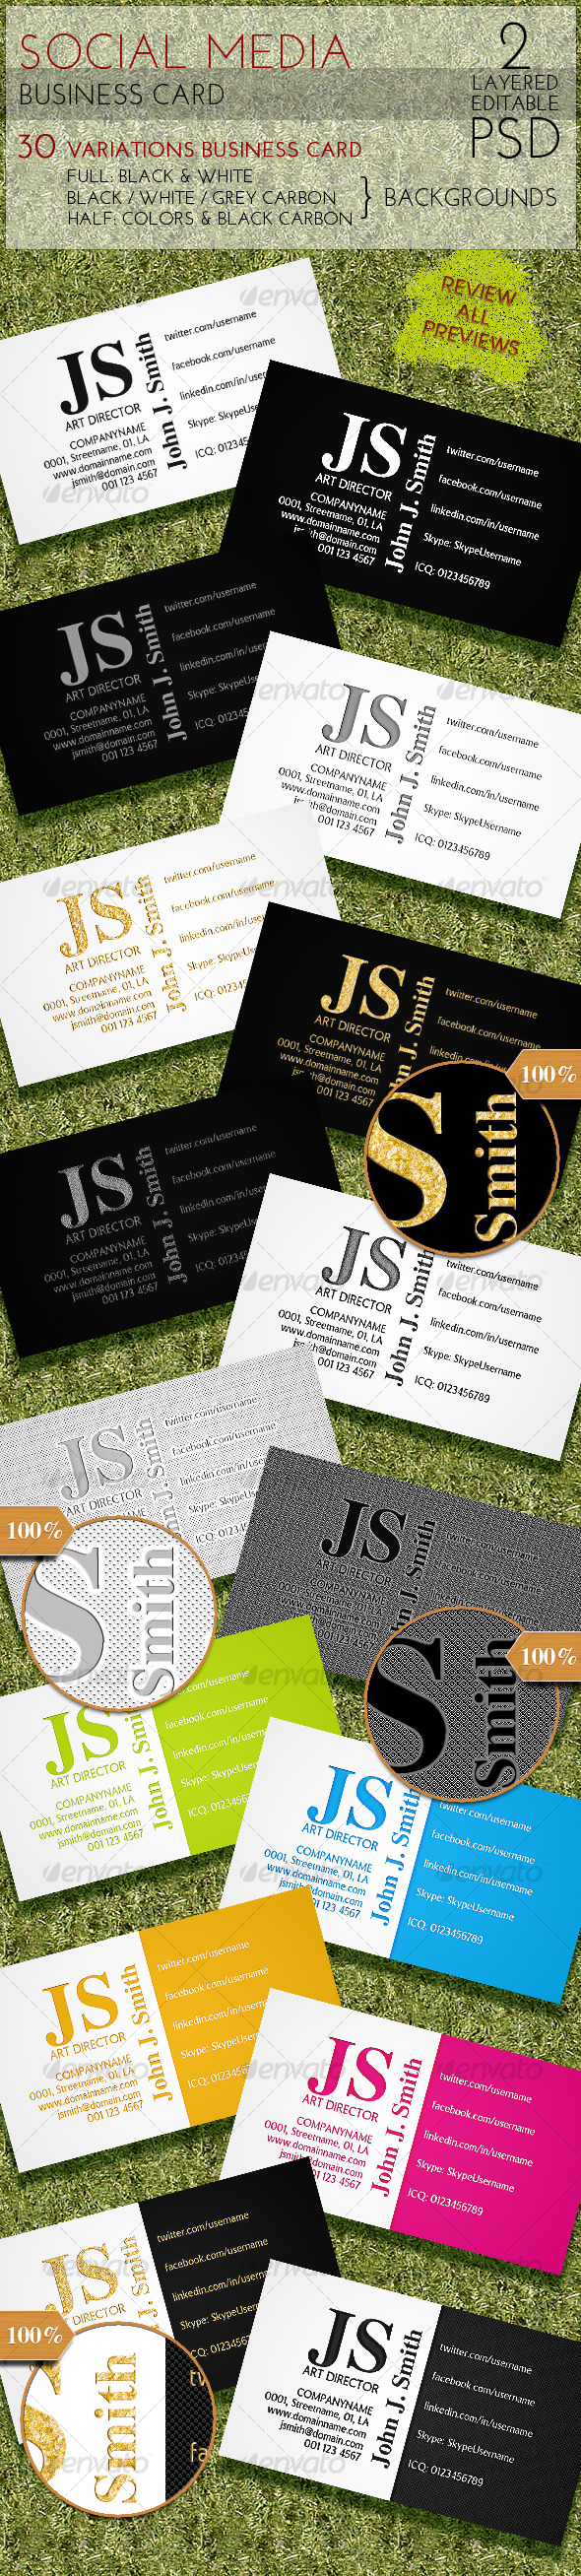 Social Media Business Card - Corporate Business Cards